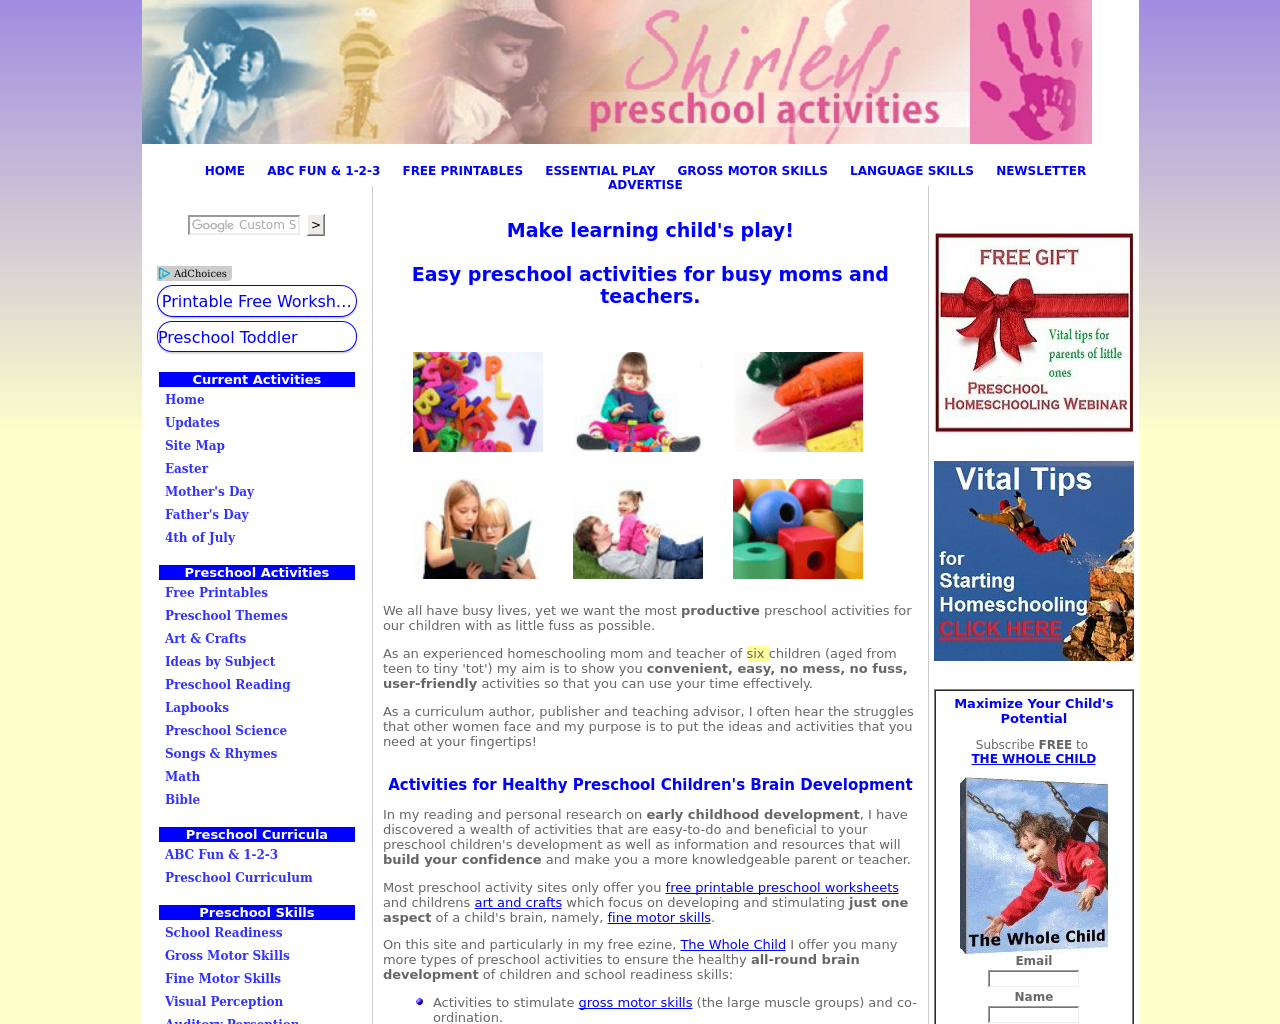 Shirleys-Preschool-Activities.com-Advertising-Reviews-Pricing